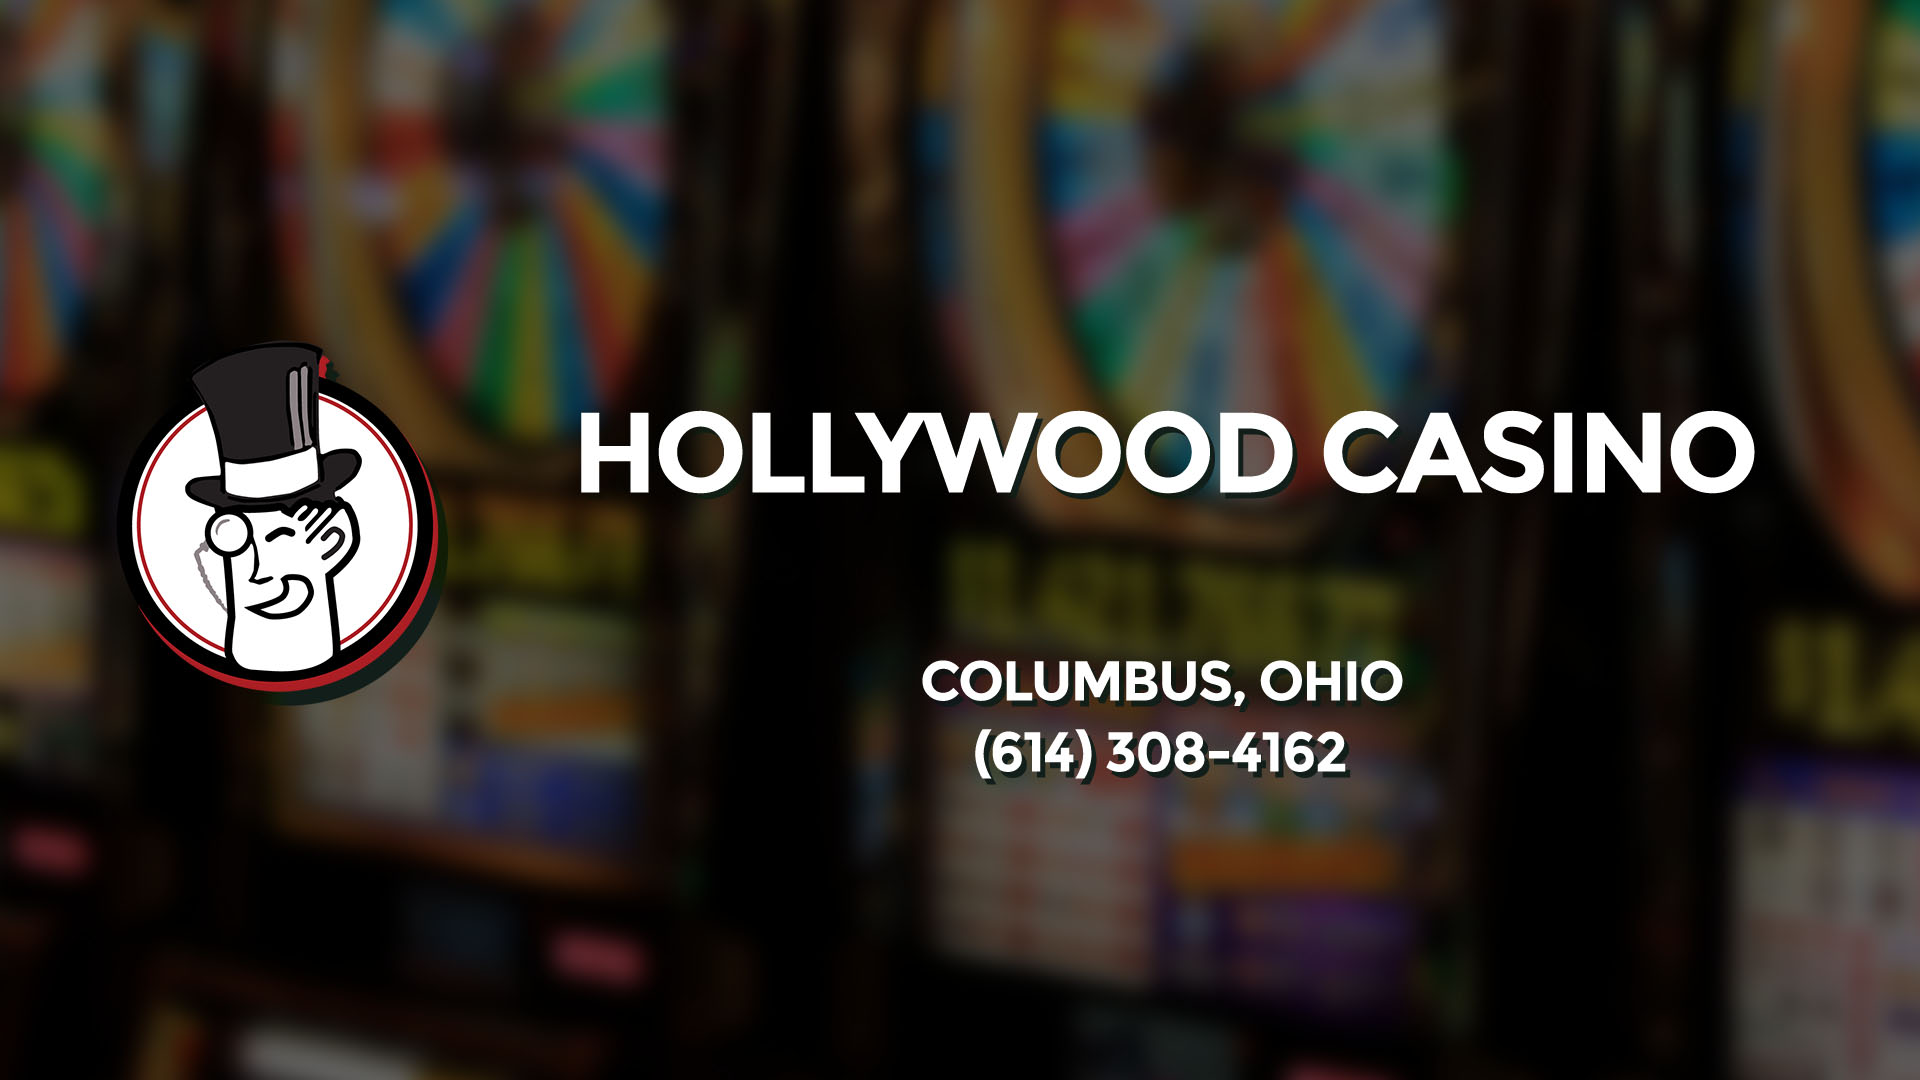 HOLLYWOOD CASINO COLUMBUS OH COLUMBUS OH